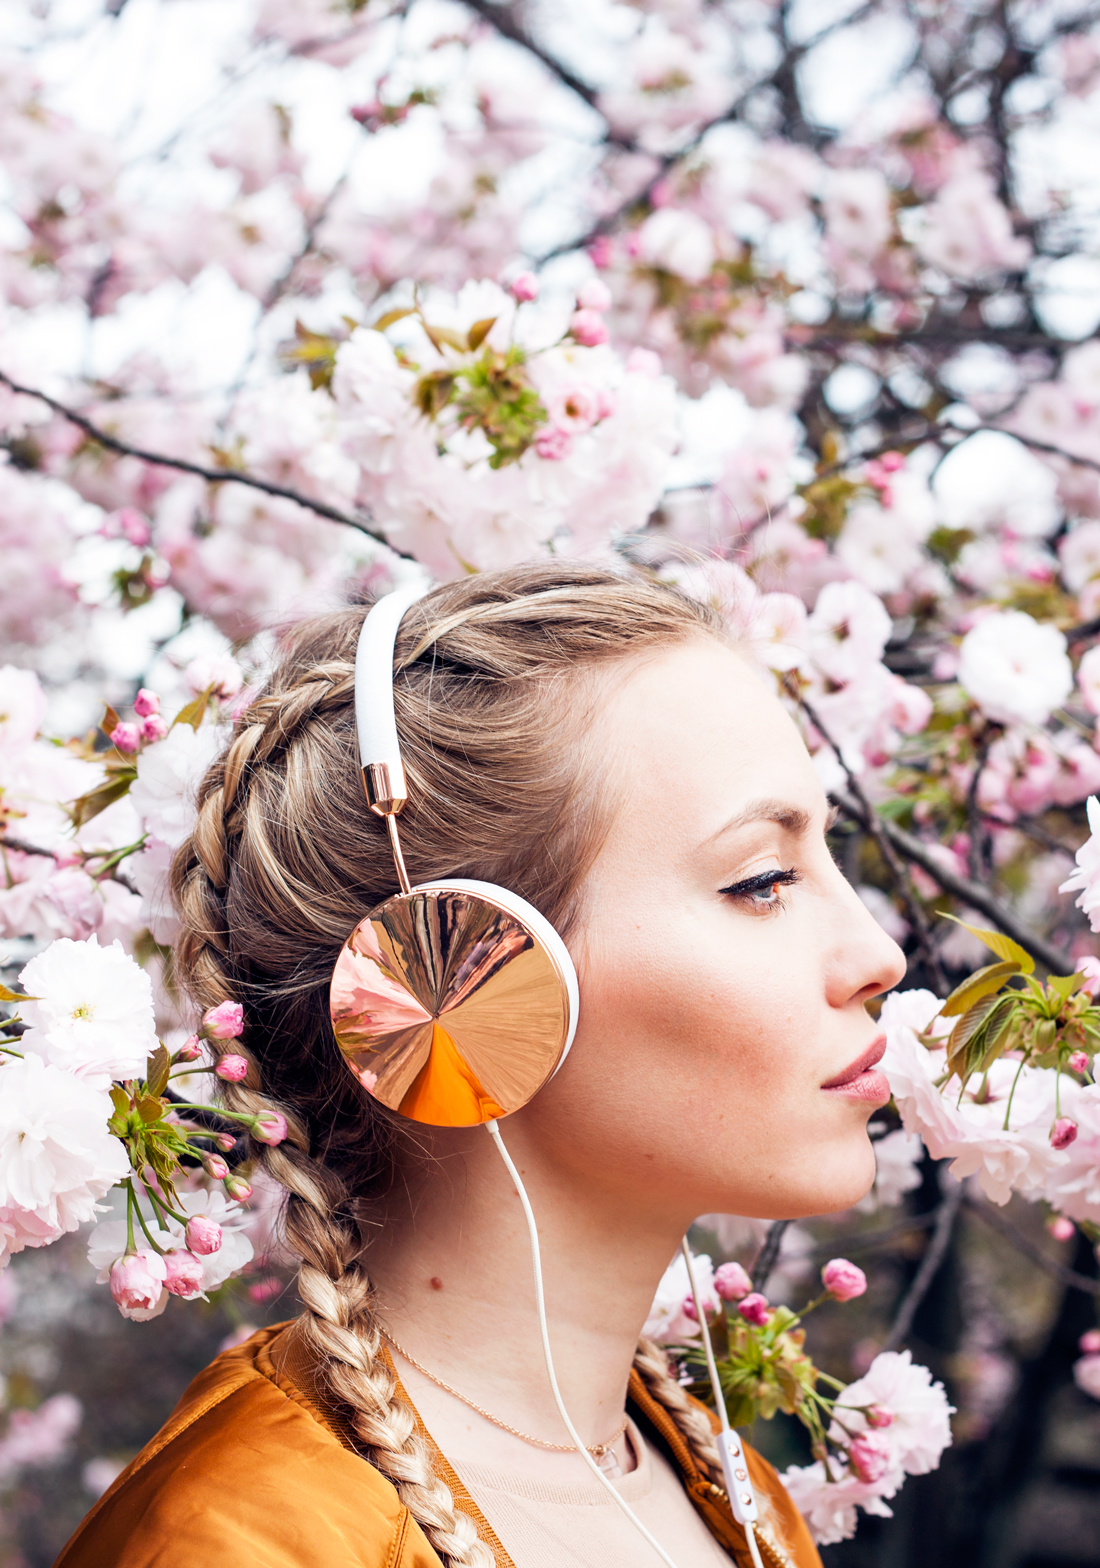 frends headphones, frends rosegold headphones, frends, stylish headphones, tech accessories, cherry blossoms, spring tokyo, tokyo, japan, scoring 2016, late blooming cherry blossoms, boxer braids, dutch braids, tokyo blog, pink cherry blossoms